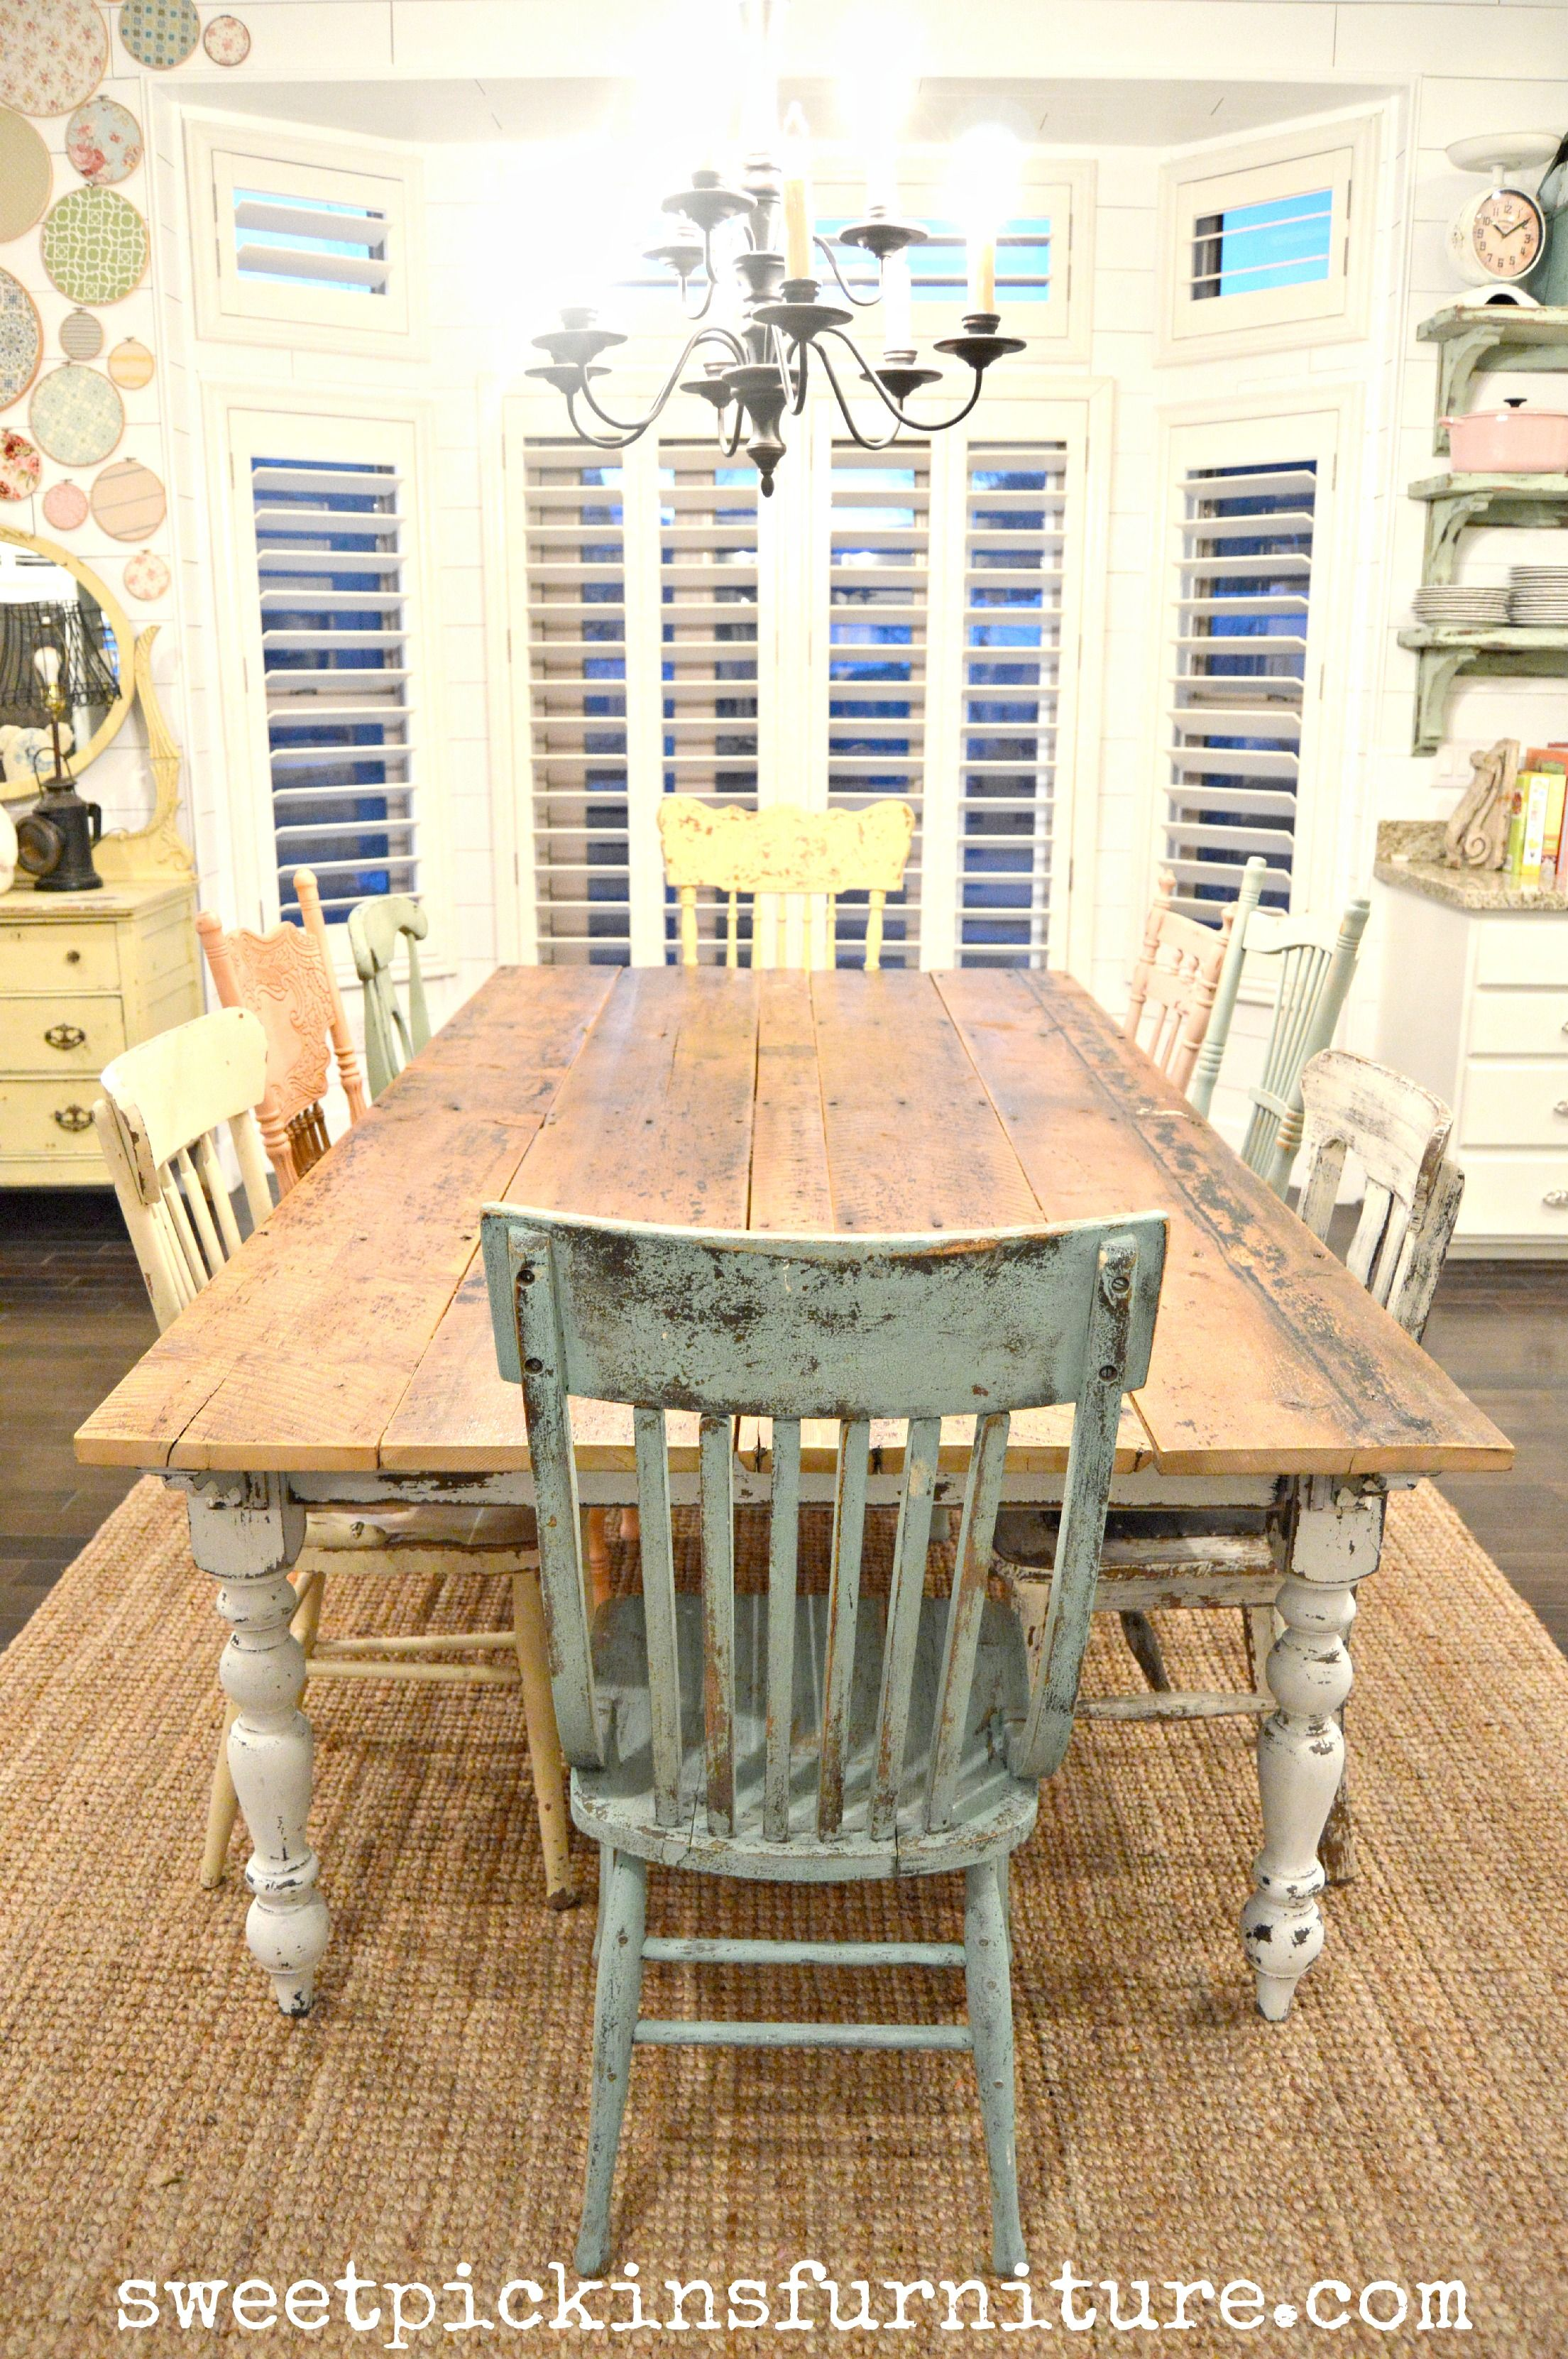 Rustic Farm Table And Chairs Patio Chair Repair My New Style W Mismatched Country Decor Sweet Pickins Tutorial